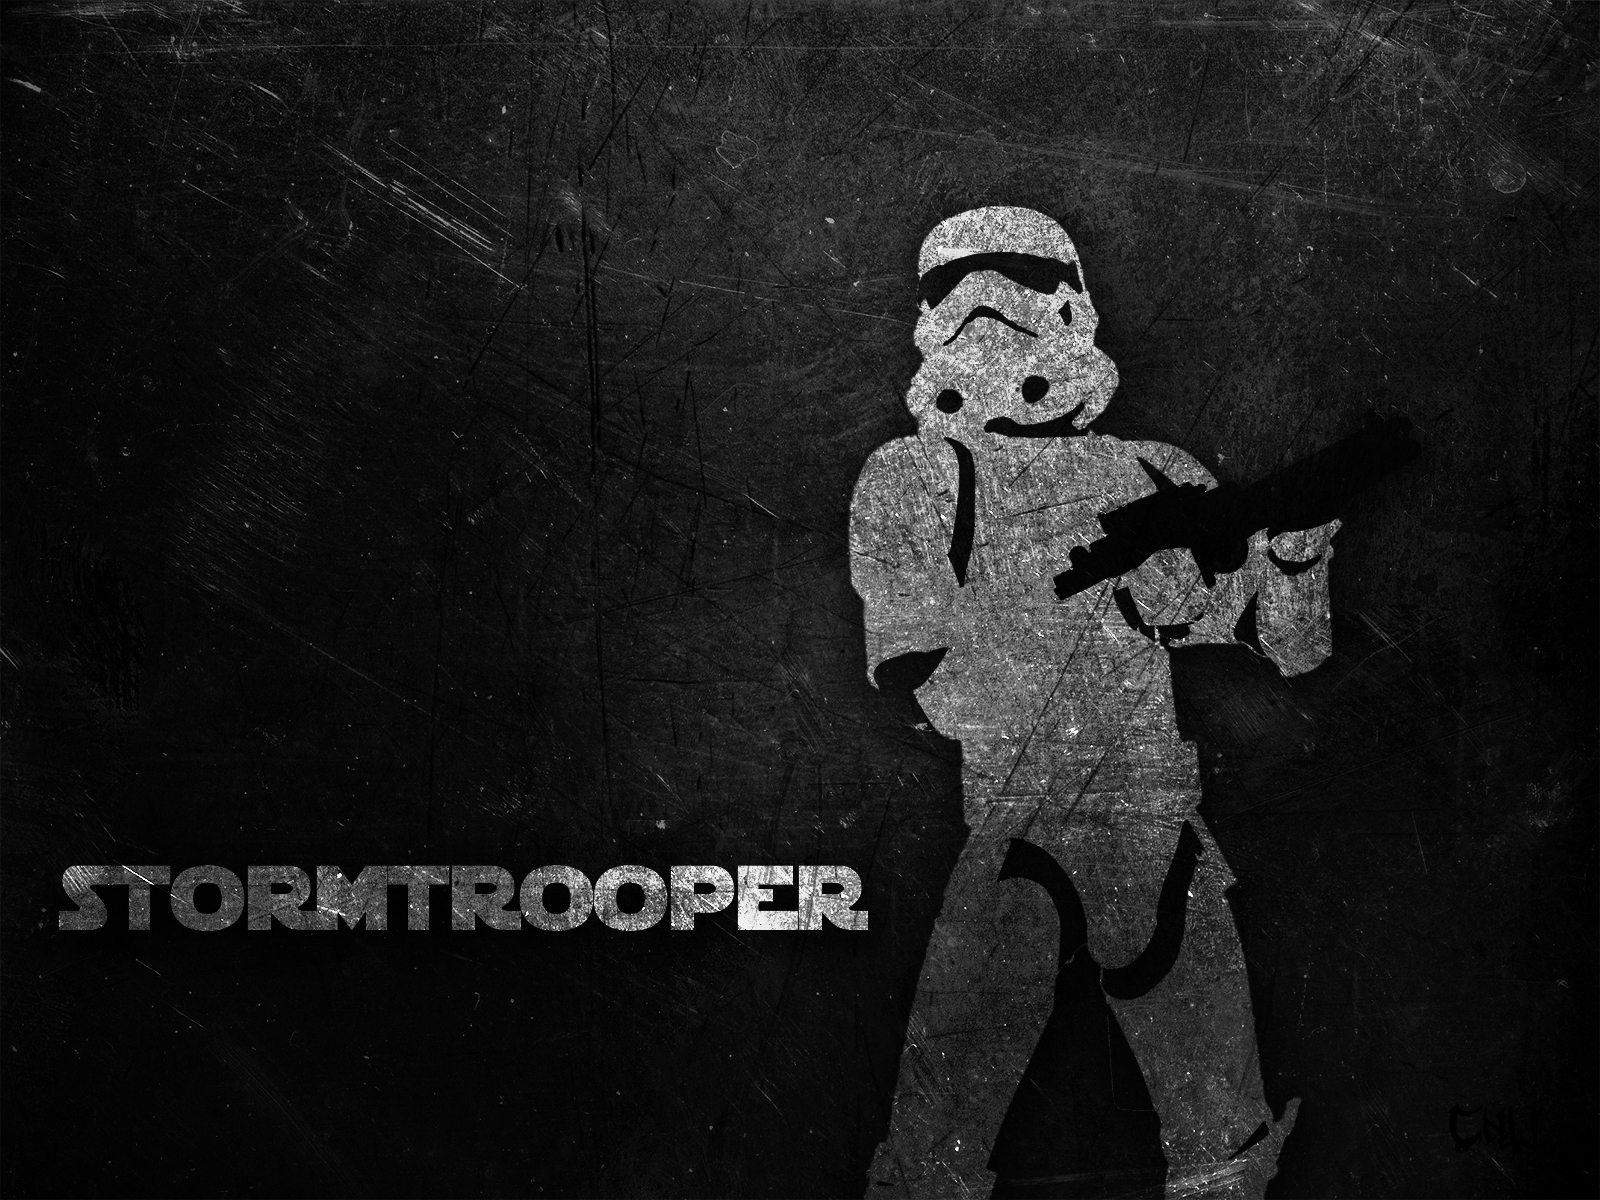 stormtrooper wallpaper star wars - photo #9